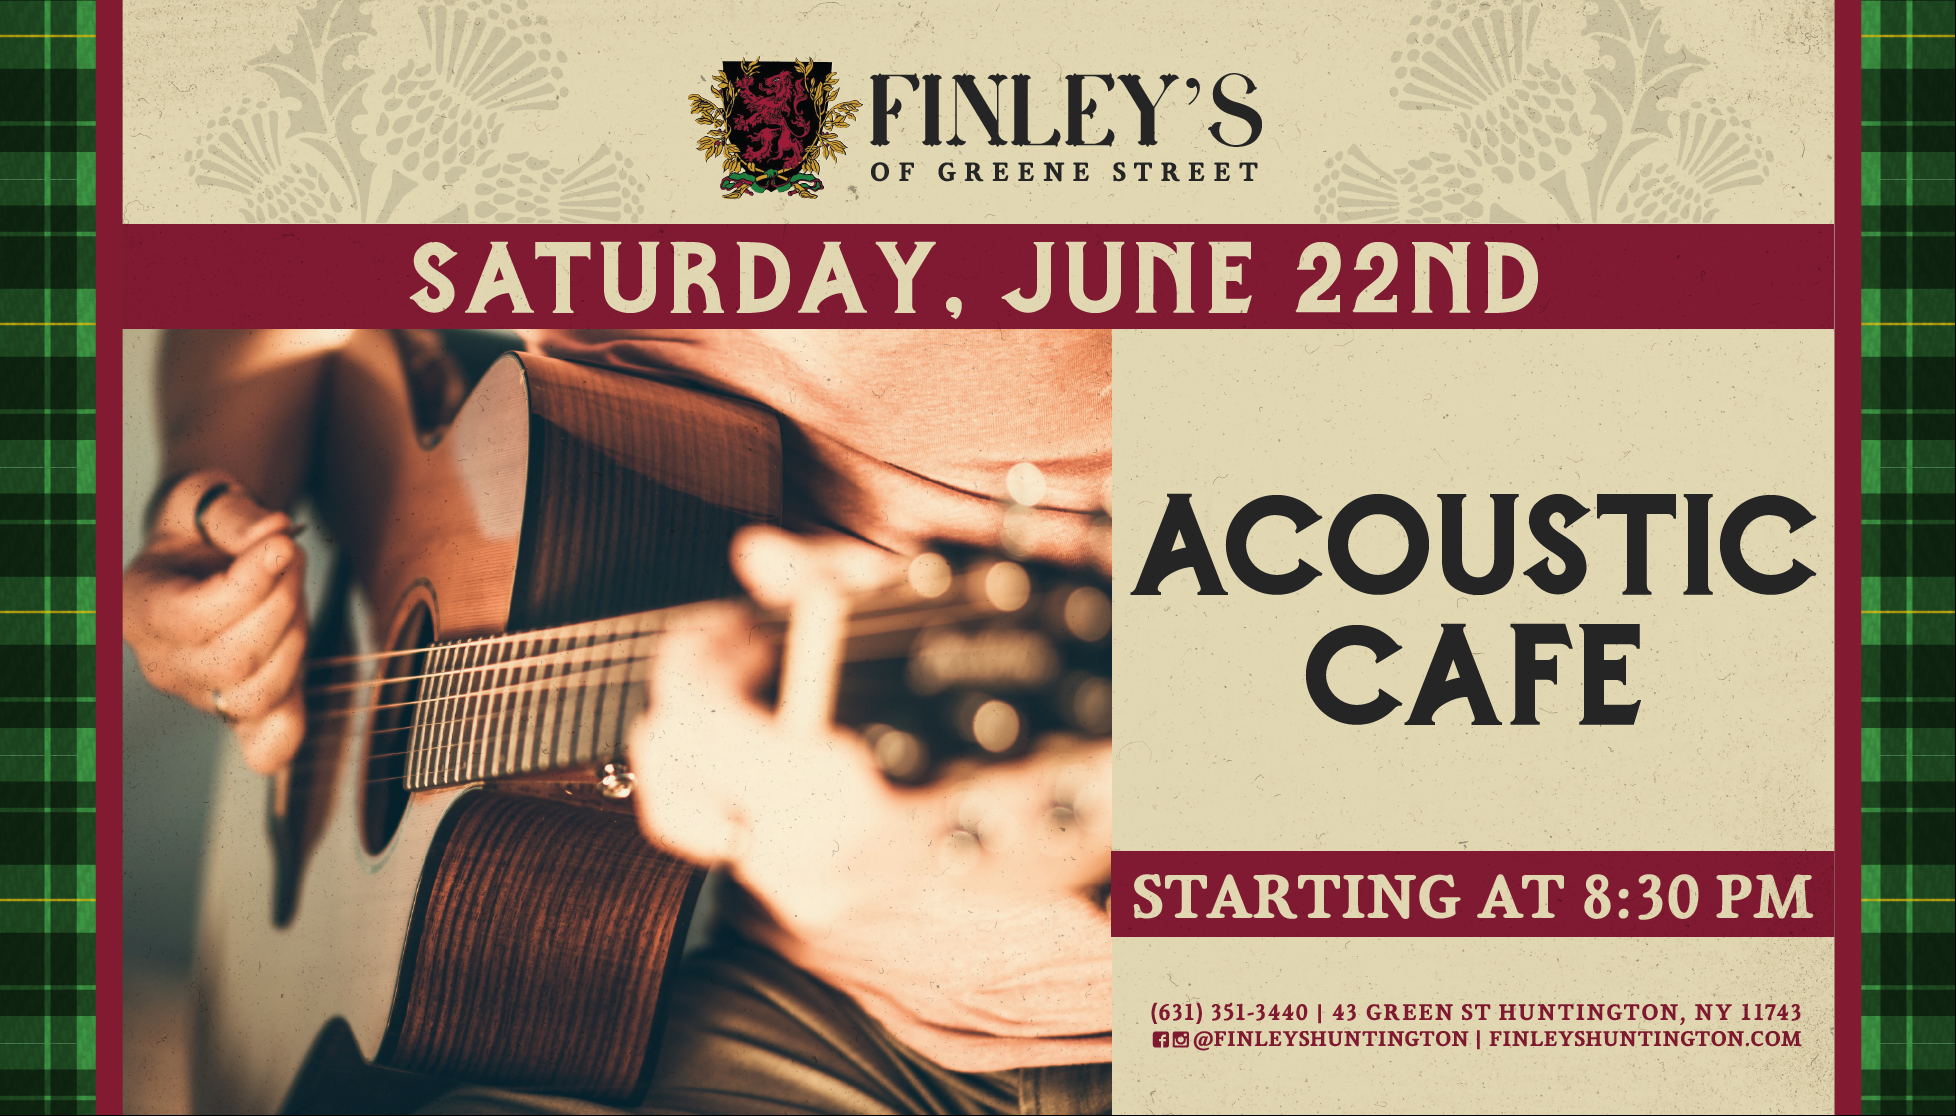 Flyer for Acoustic Cafe starting at 8:30pm on June 22nd